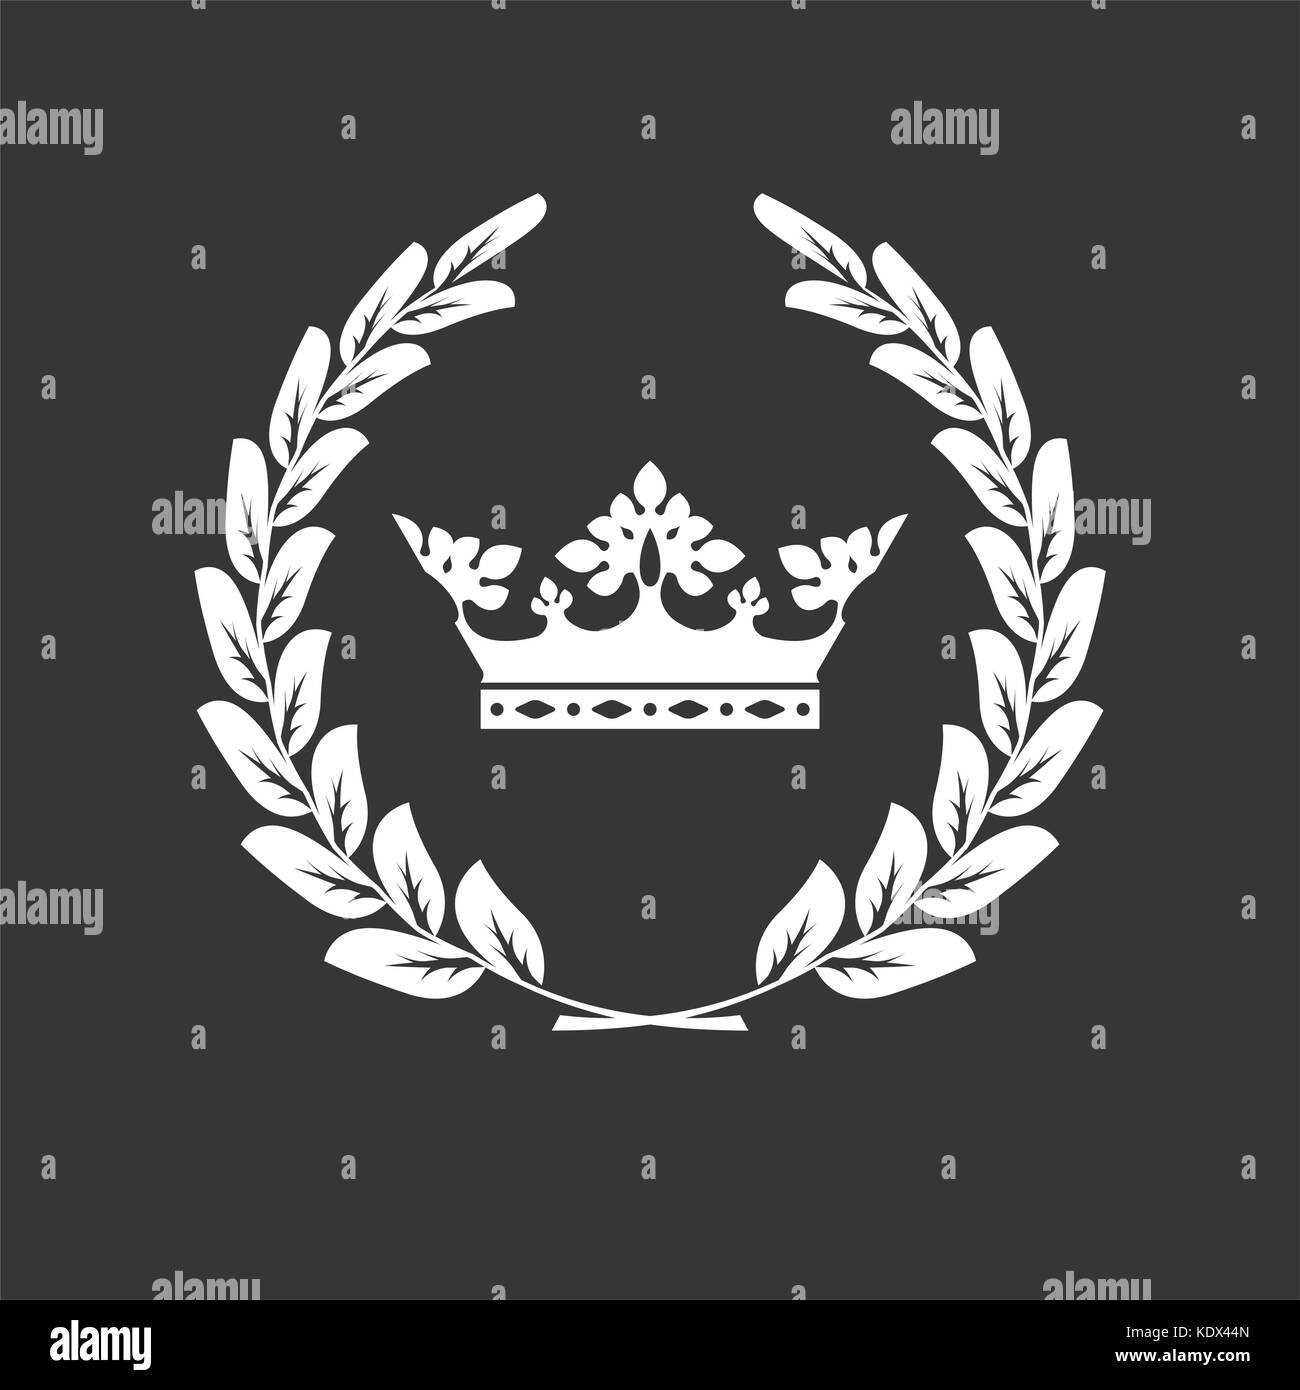 Crown and laurel wreath - family blazon or coat of arms - Stock Vector